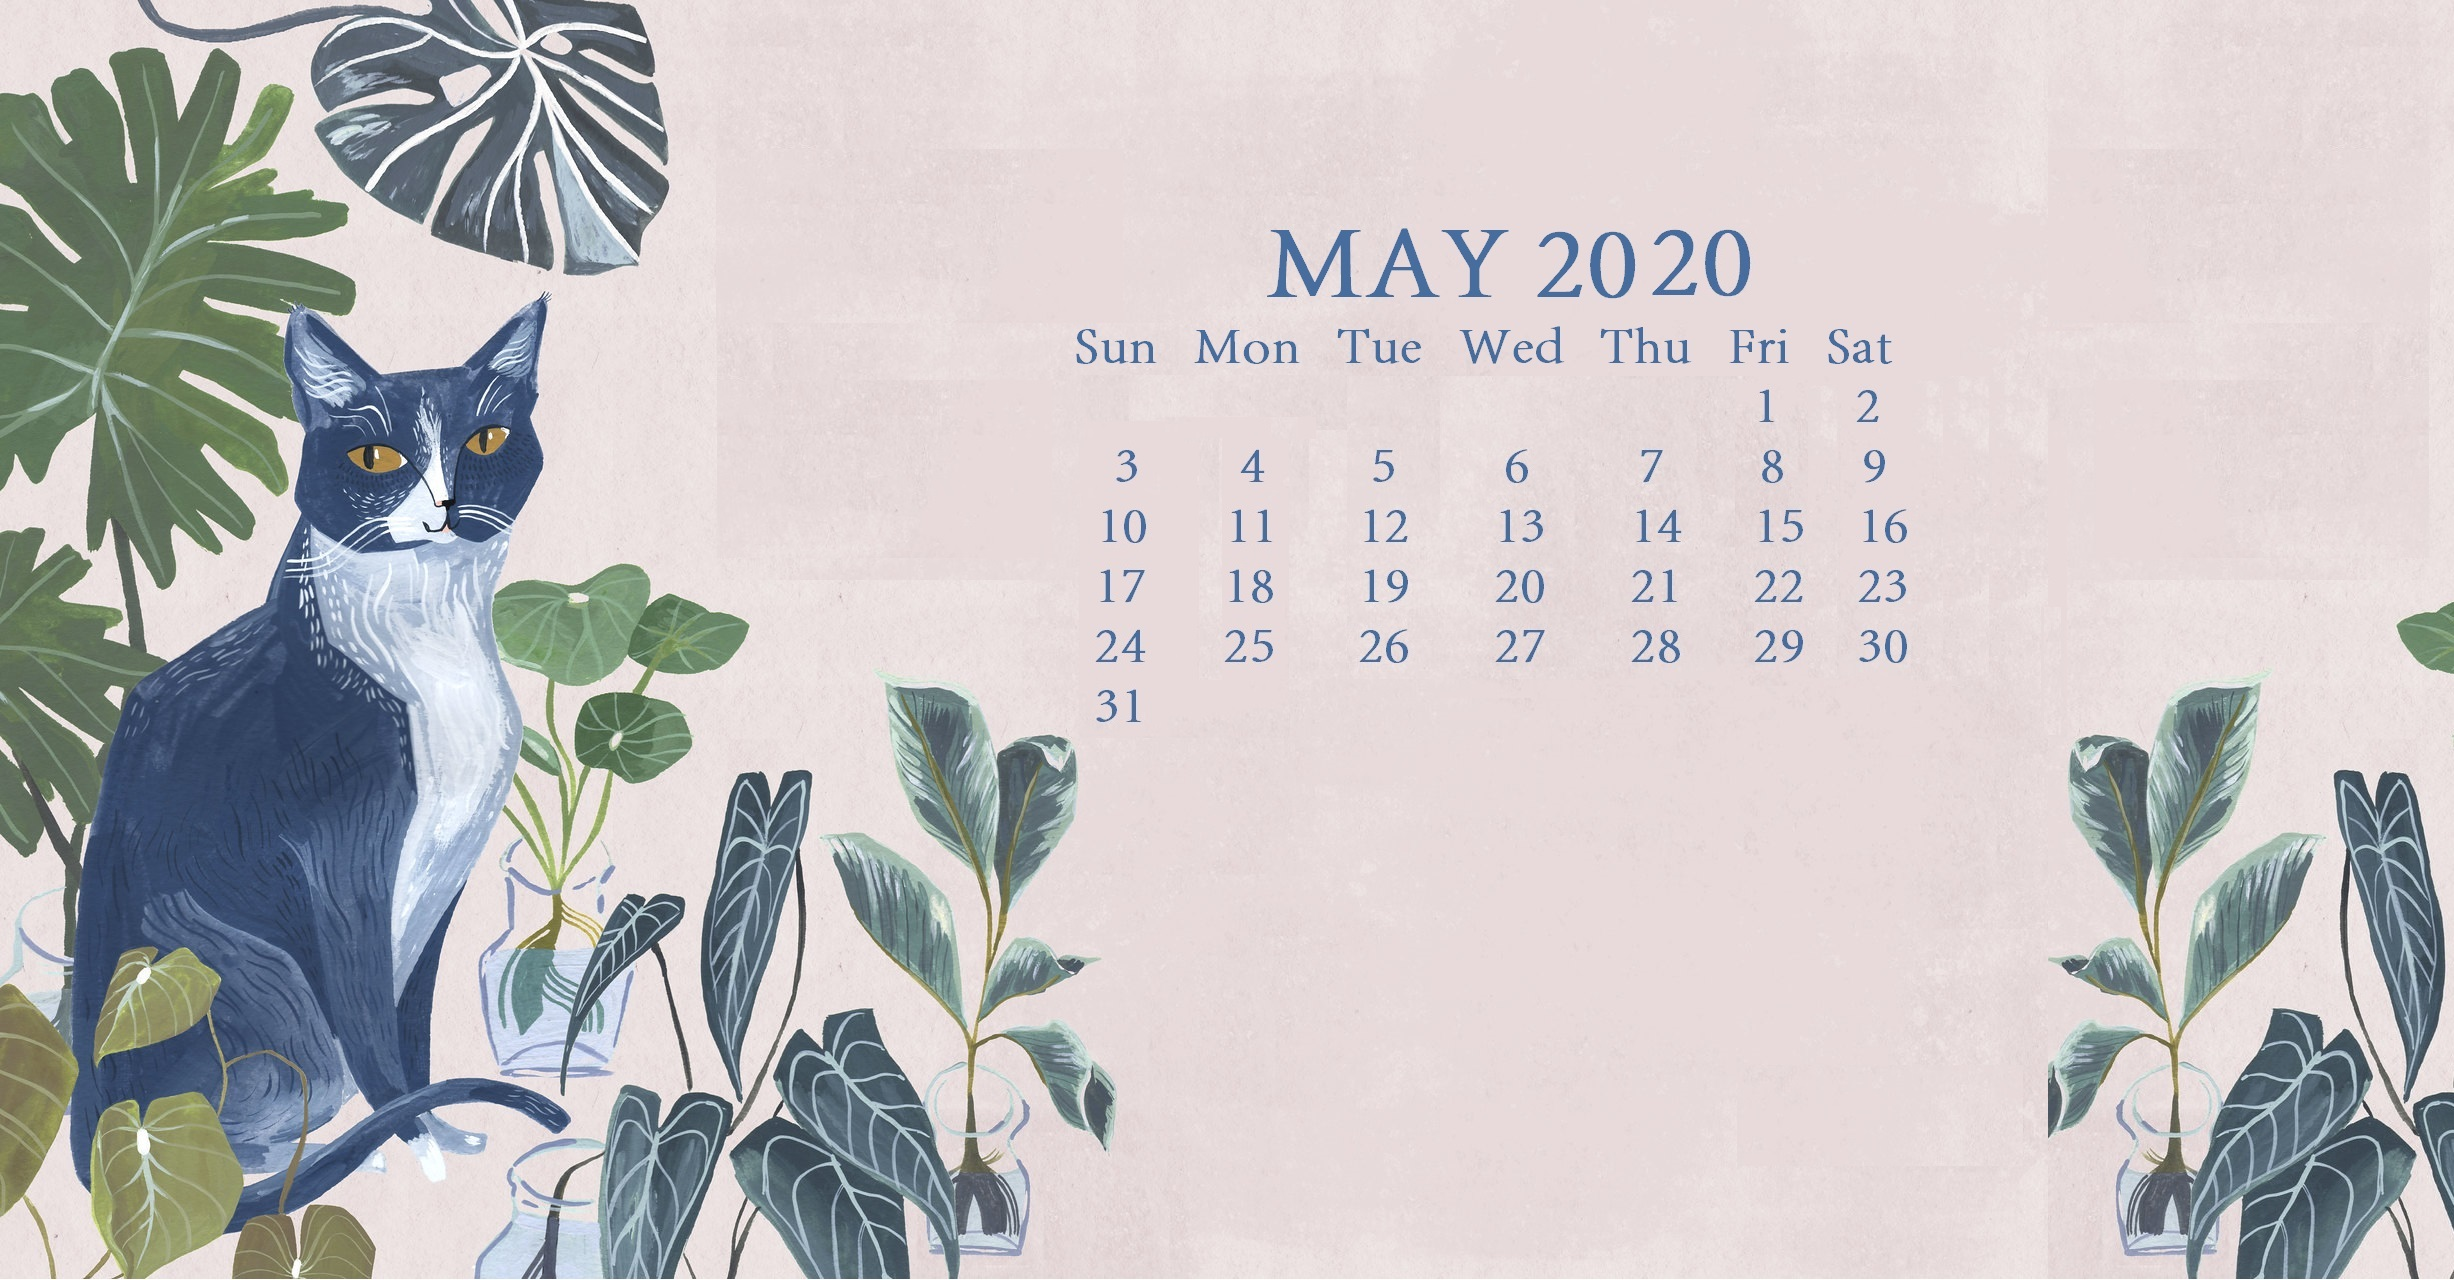 Cute 2020 Desktop Calendar Wallpaper Latest Calendar 2454x1280